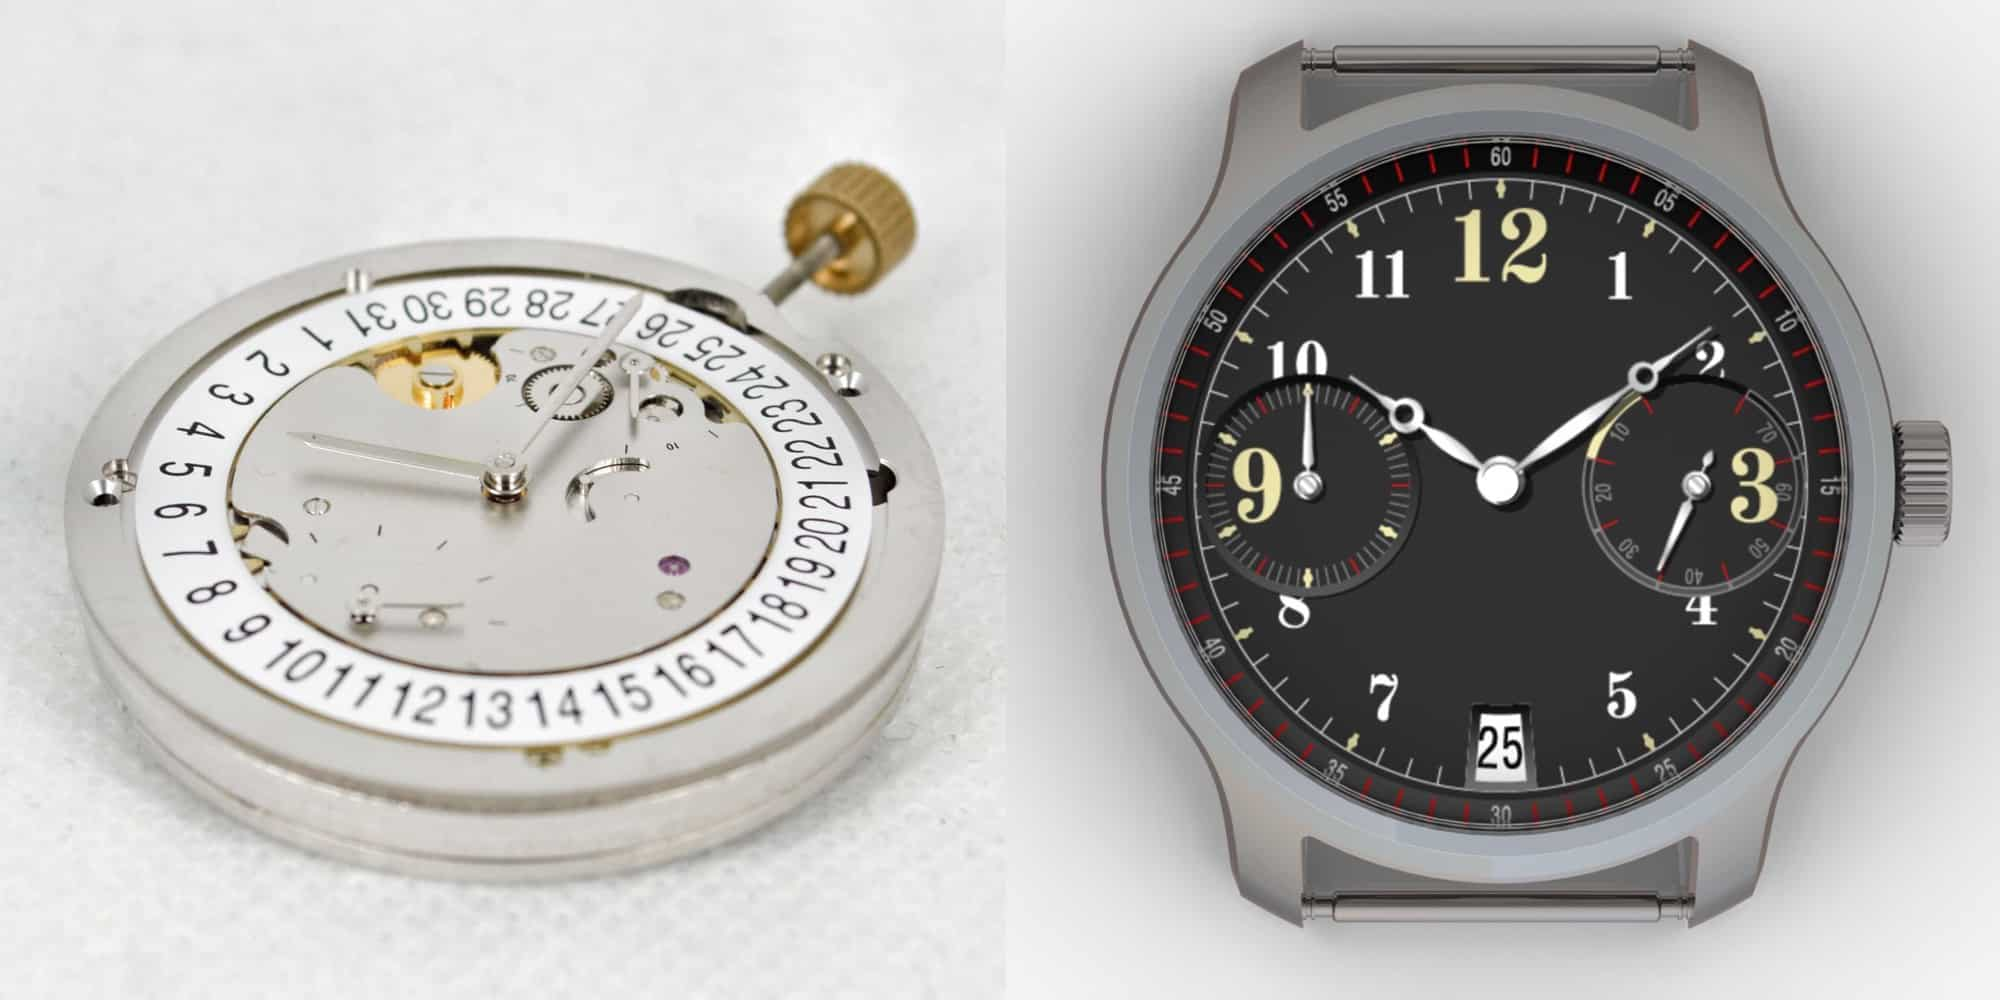 Chinese Forum Watch Project: An Affordable With a 70-Hour Power Reserve - Worn & Wound